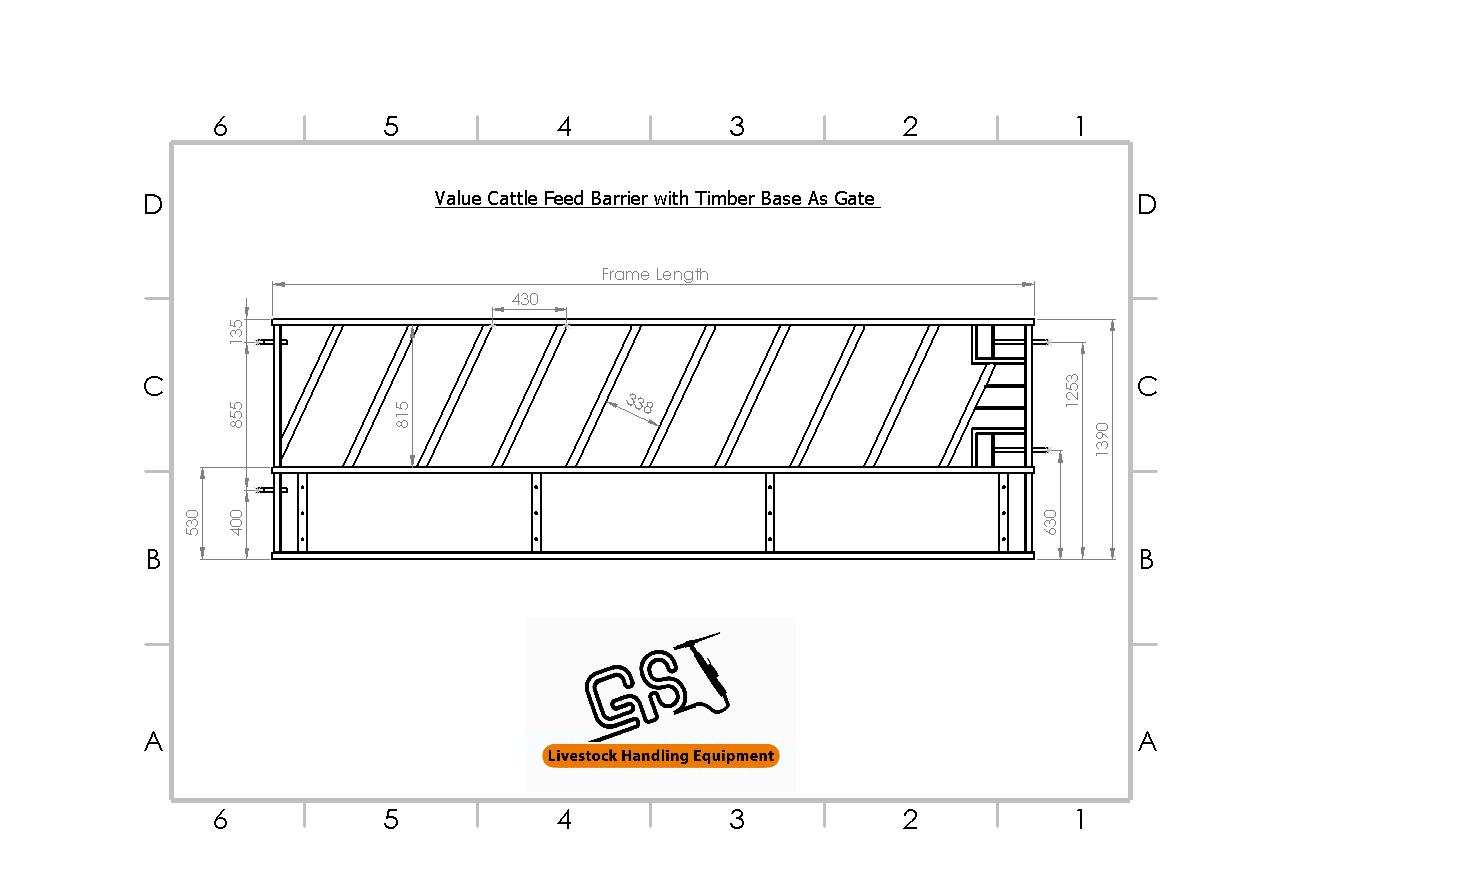 Value Cattle Feed Barrier With Timber Base As Gate